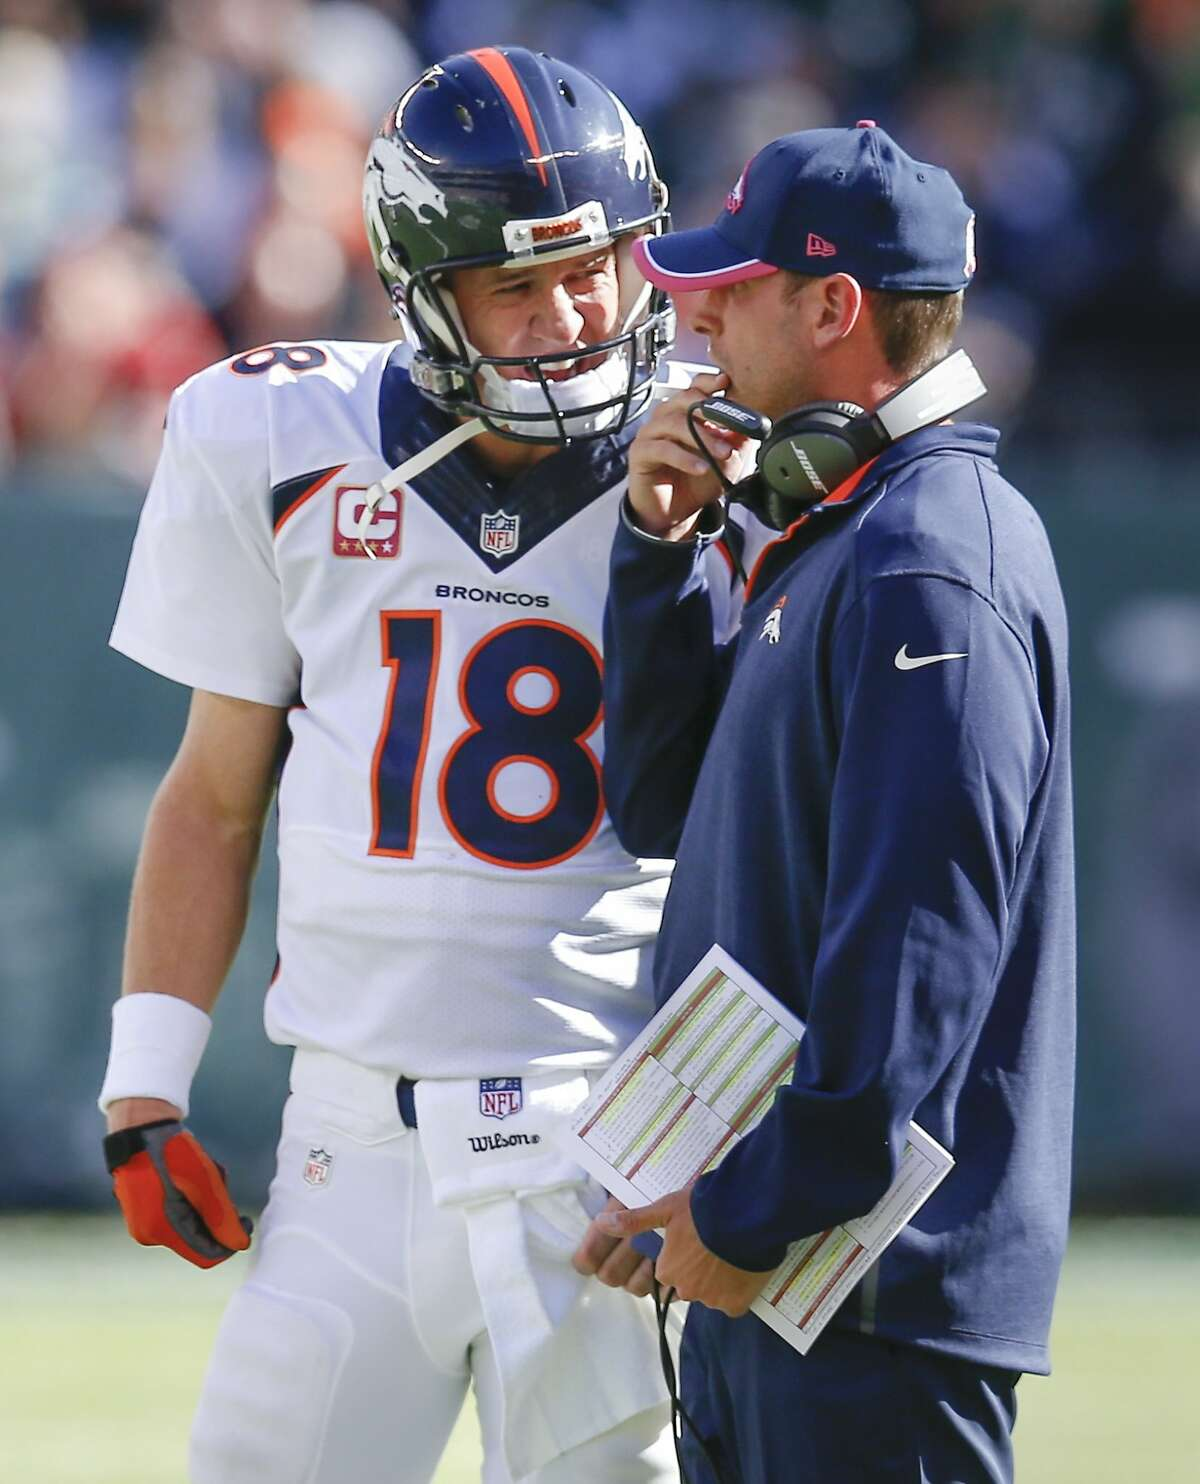 ADVANCE FOR WEEKEND EDITIONS, DEC. 20-21- FILE - In this Oct. 12, 2014, file photo, Denver Broncos quarterback Peyton Manning (18) talks with offensive coordinator Adam Gase between plays during the third quarter of an NFL football game against the New York Jets in East Rutherford, N.J. The Associated Press will honor an NFL assistant coach for the first time this year with his own award. (AP Photo/Kathy Willens, File)